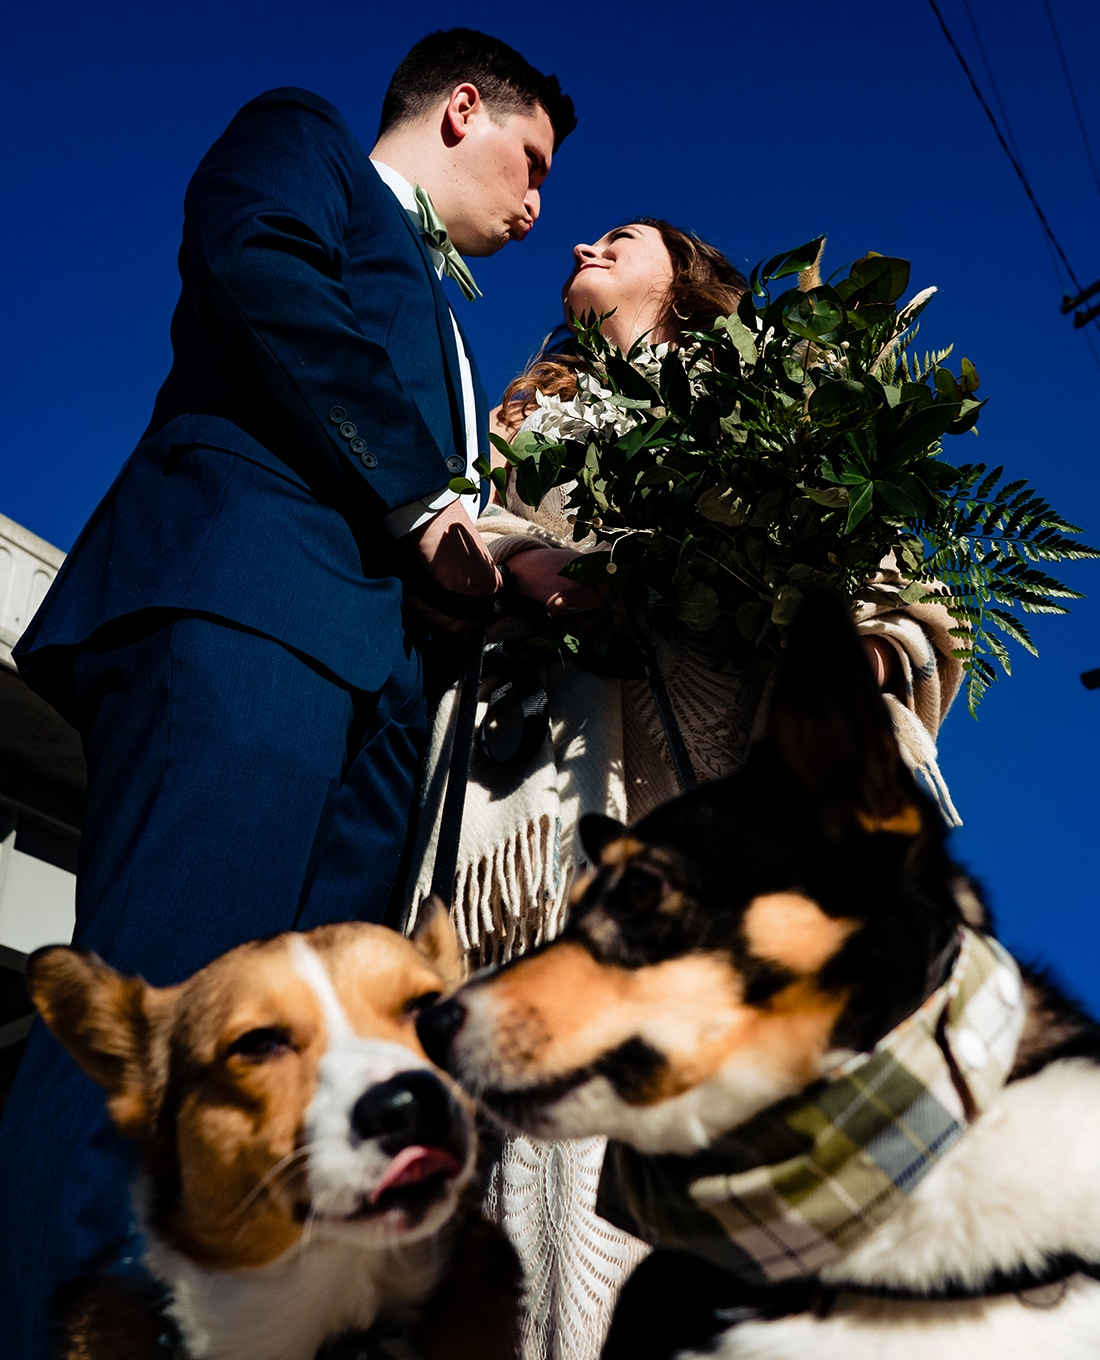 A colorful, candid picture of a groom leaning in to kiss his bride as their dogs lean in to lick each other on the day of their fall wedding in Kansas City.